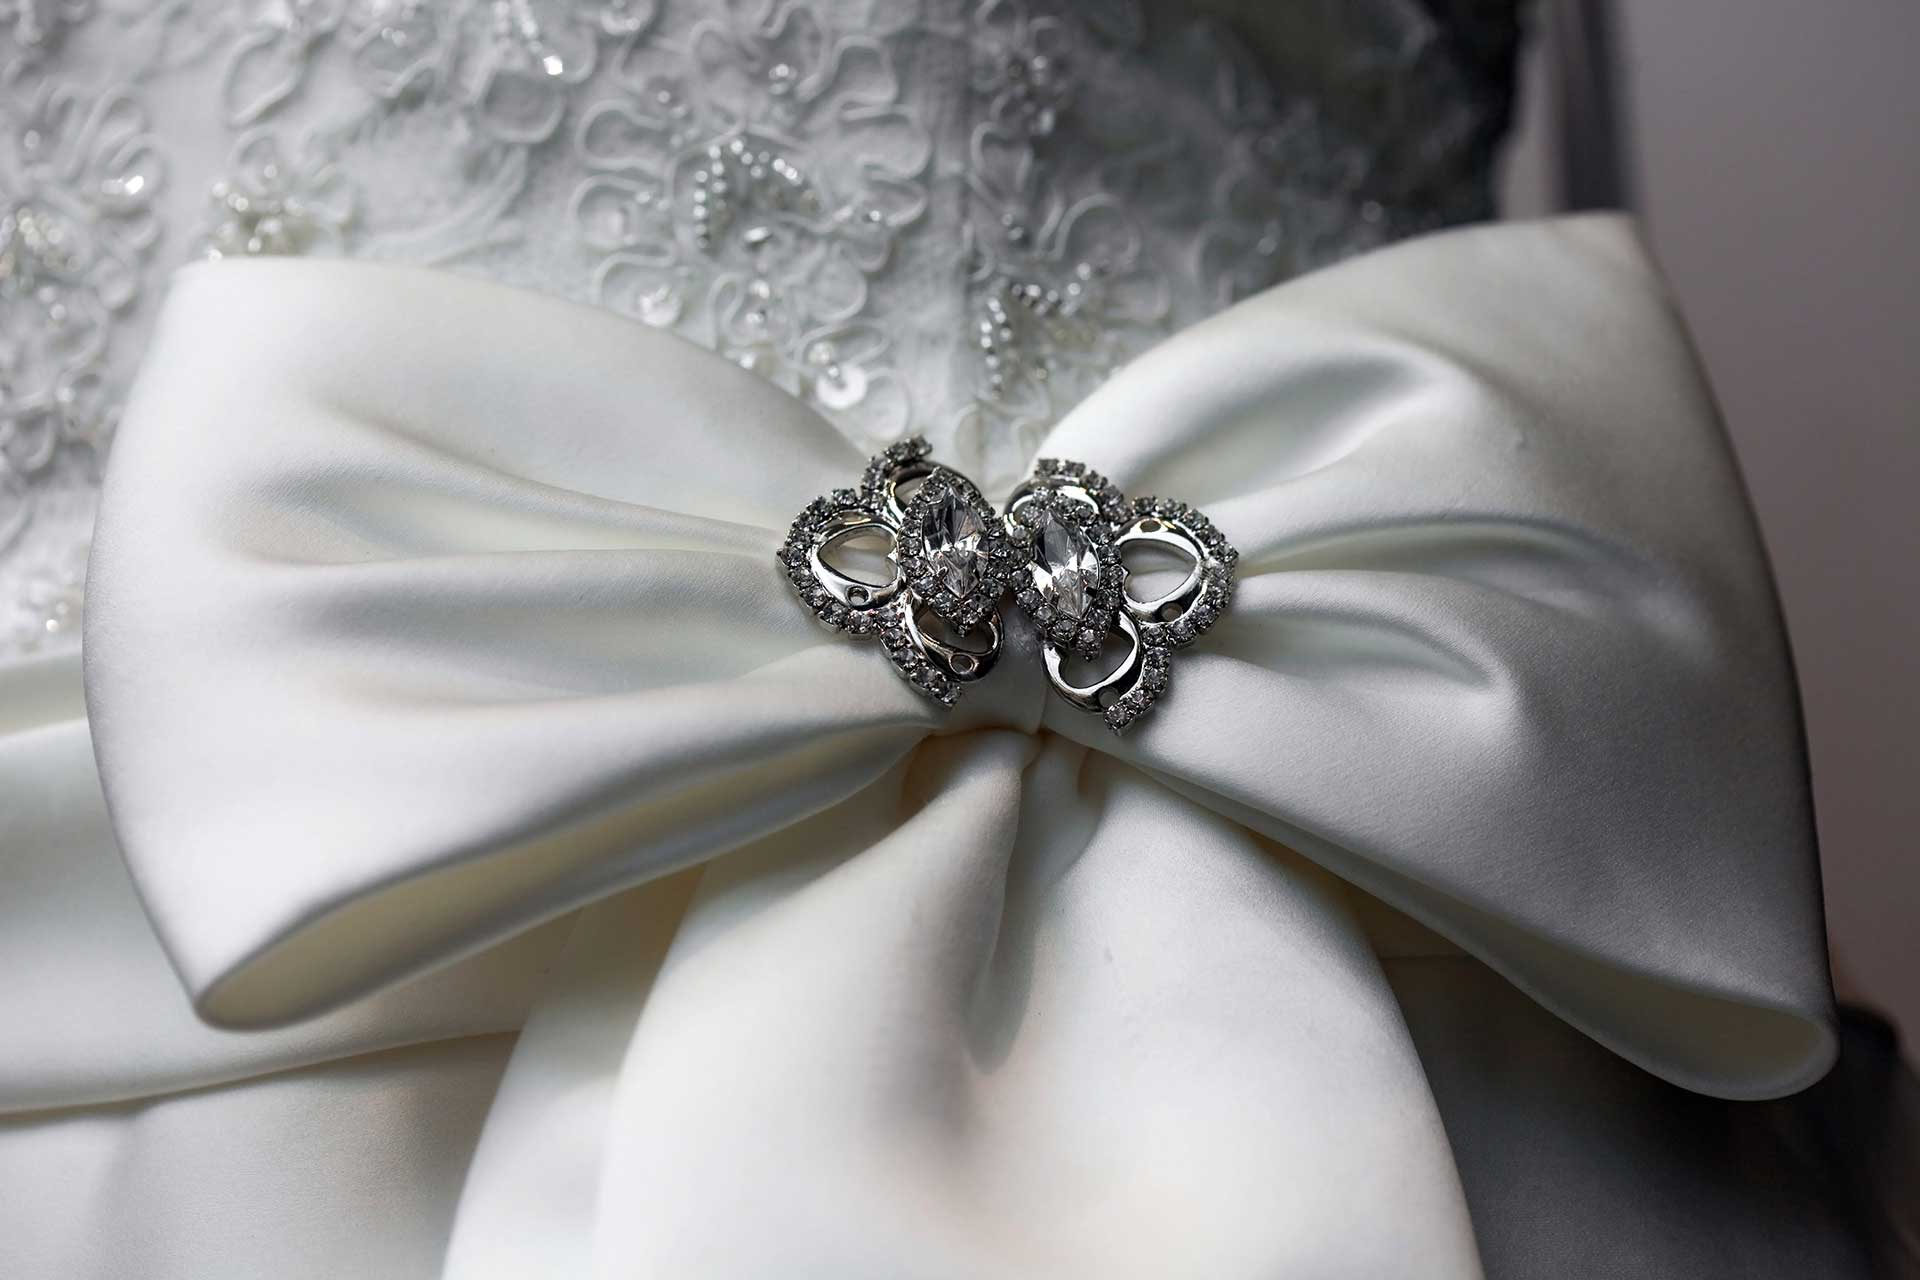 Bows big and small - New year, New bride!